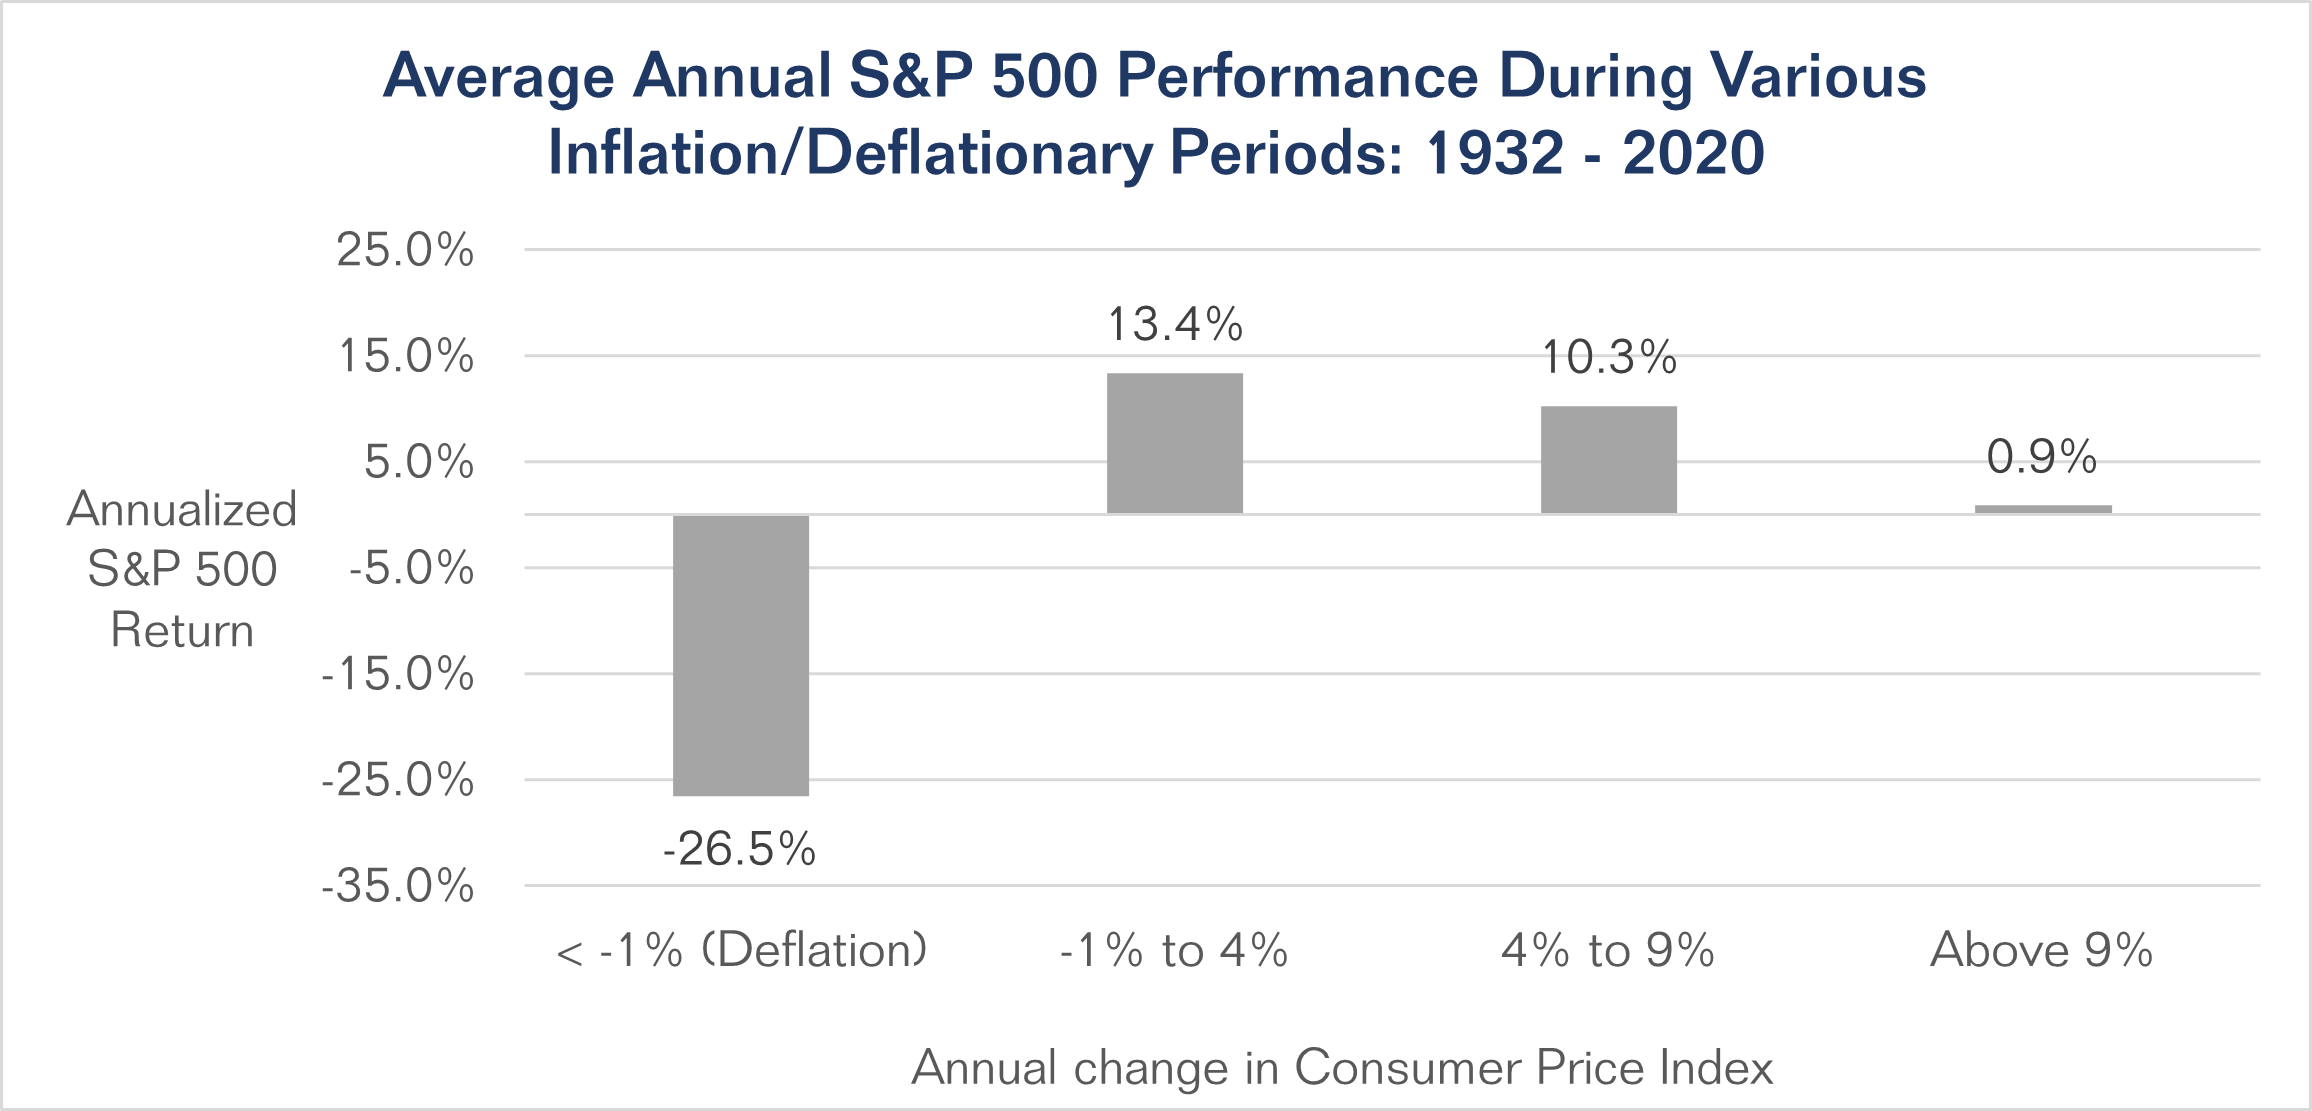 Average annual S&P 500 Performance During Various Inflation/Deflationary Periods (1932-2020): During periods where annual change in Consumer Price Index (CPI) was less than -1% (i.e., deflation), annualized S&P returns were -26.5%; during periods where annual change in CPI was between -1% and 4%, annualized S&P 500 returns were 13.4%; during periods where annual change in CPI was between 4% and 9%, annualized S&P returns were 10.3%; and during periods where annual change in CPI was above 9%, annualized S&P 500 returns were 0.9%.